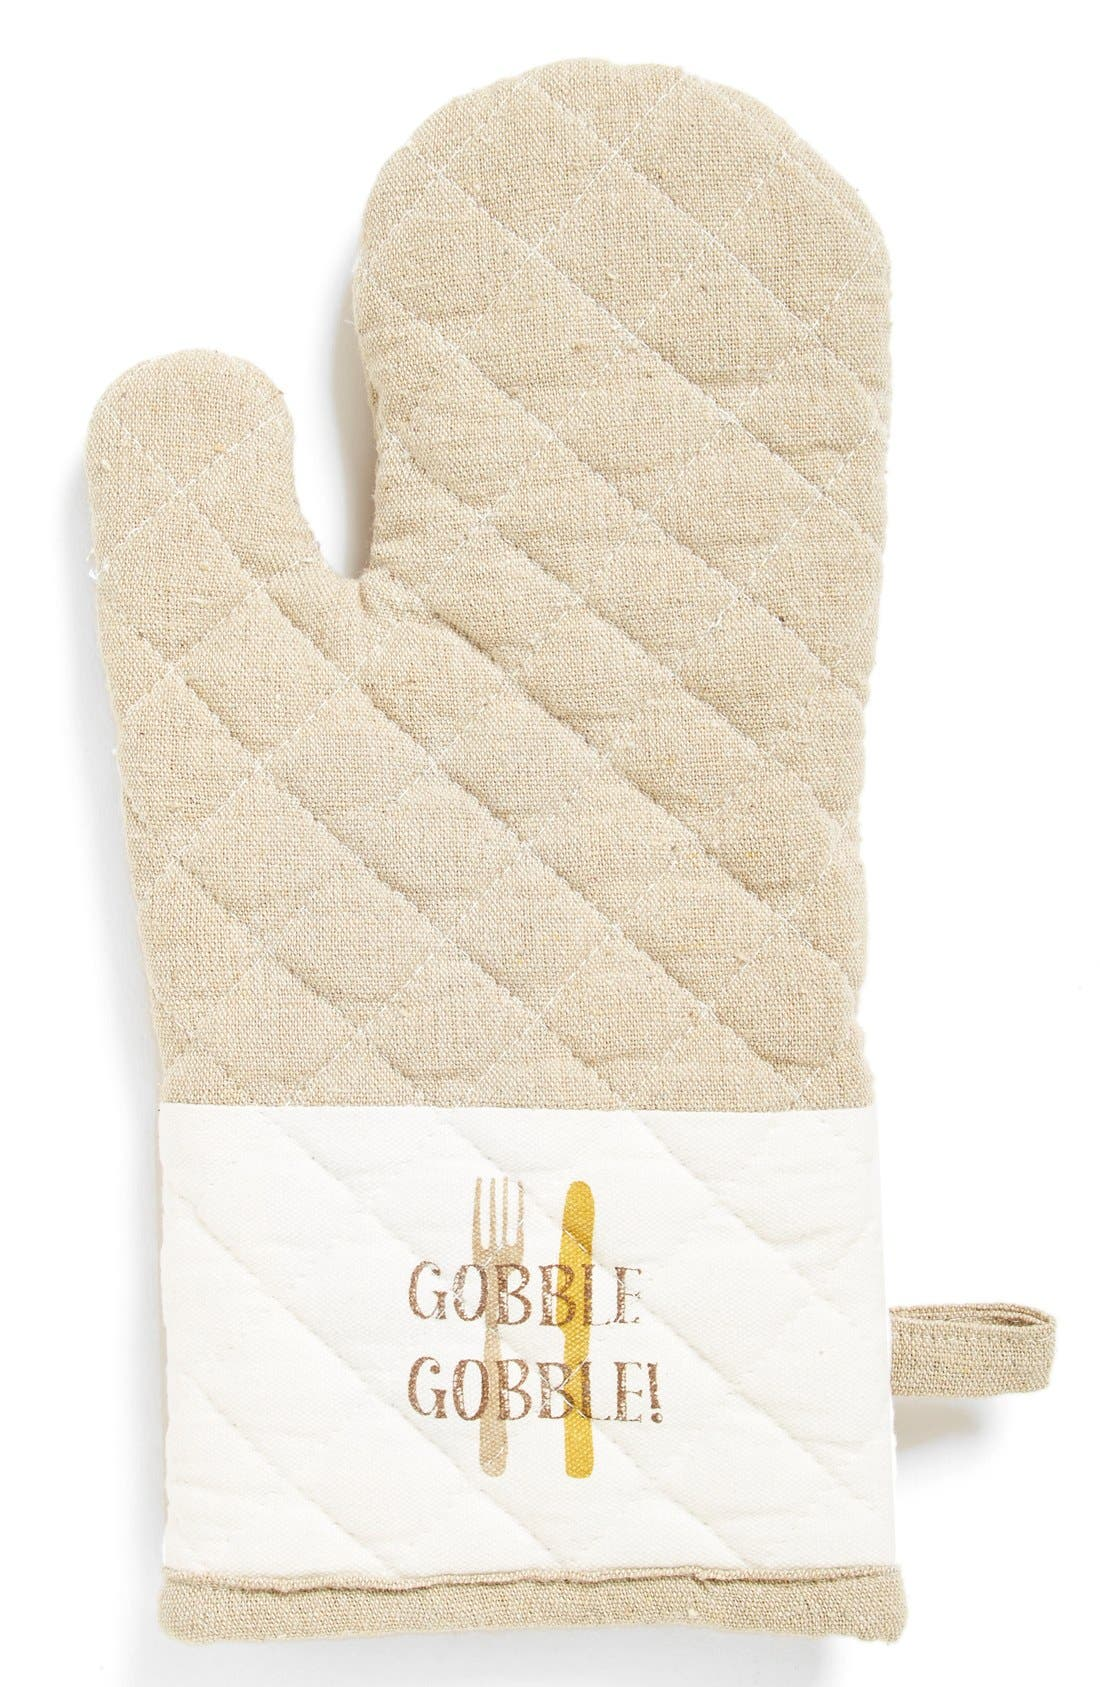 'Gobble Gobble!' Quilted Oven Mitt,                         Main,                         color, 250